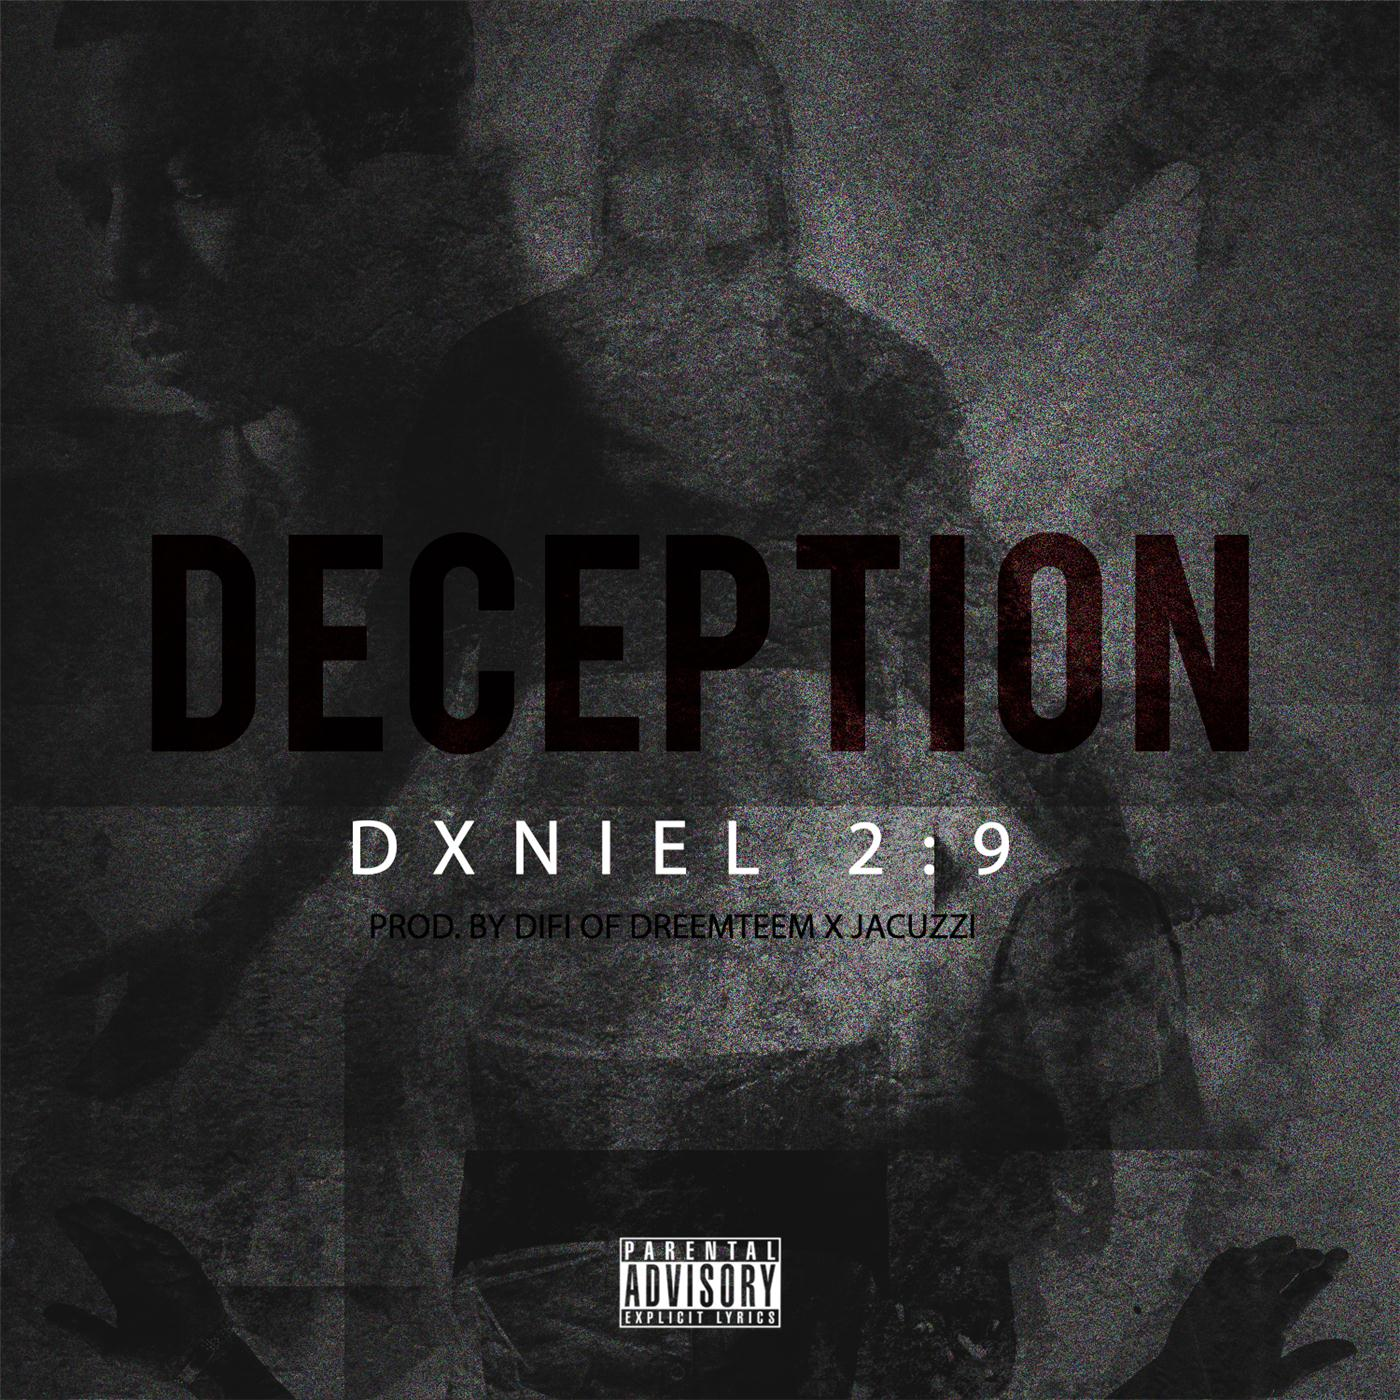 DXniel 2:9 - Deception (She Don't Gotta Know) (prod. DiFI of DreemTeem & Jacuzzi) [Thizzler.com]